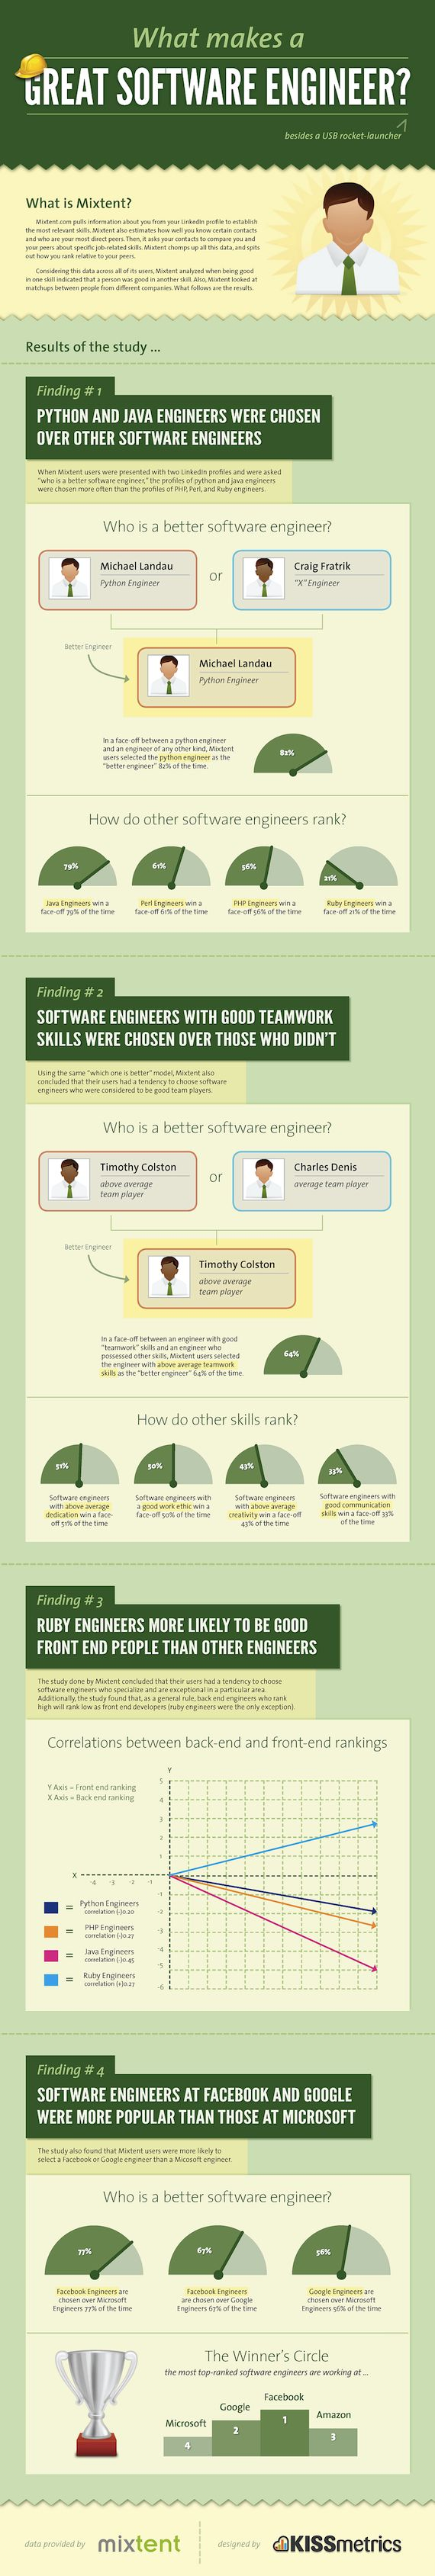 155 best images about cio infographic on pinterest